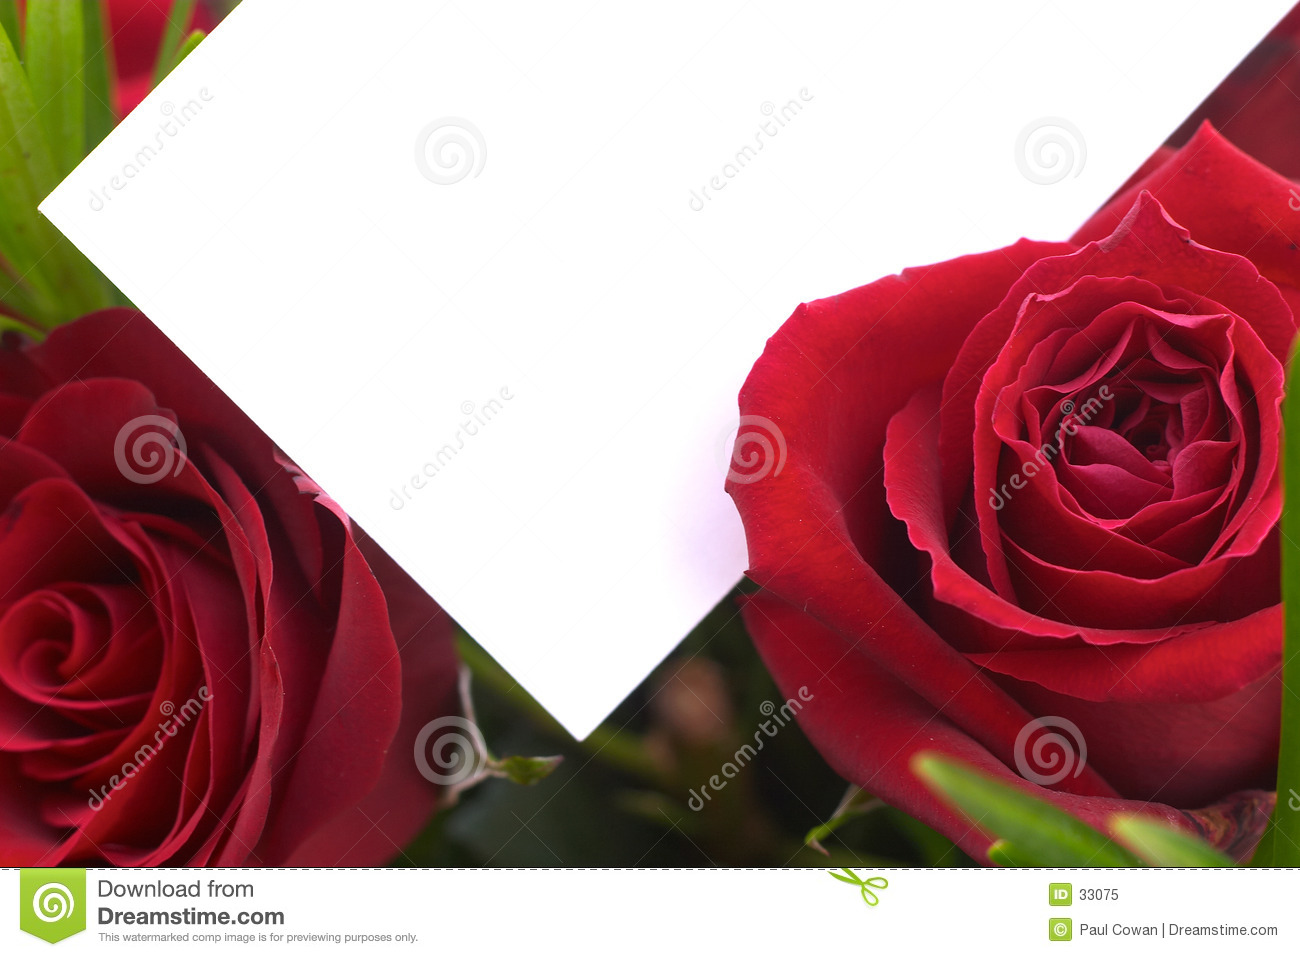 Roses rouges 2